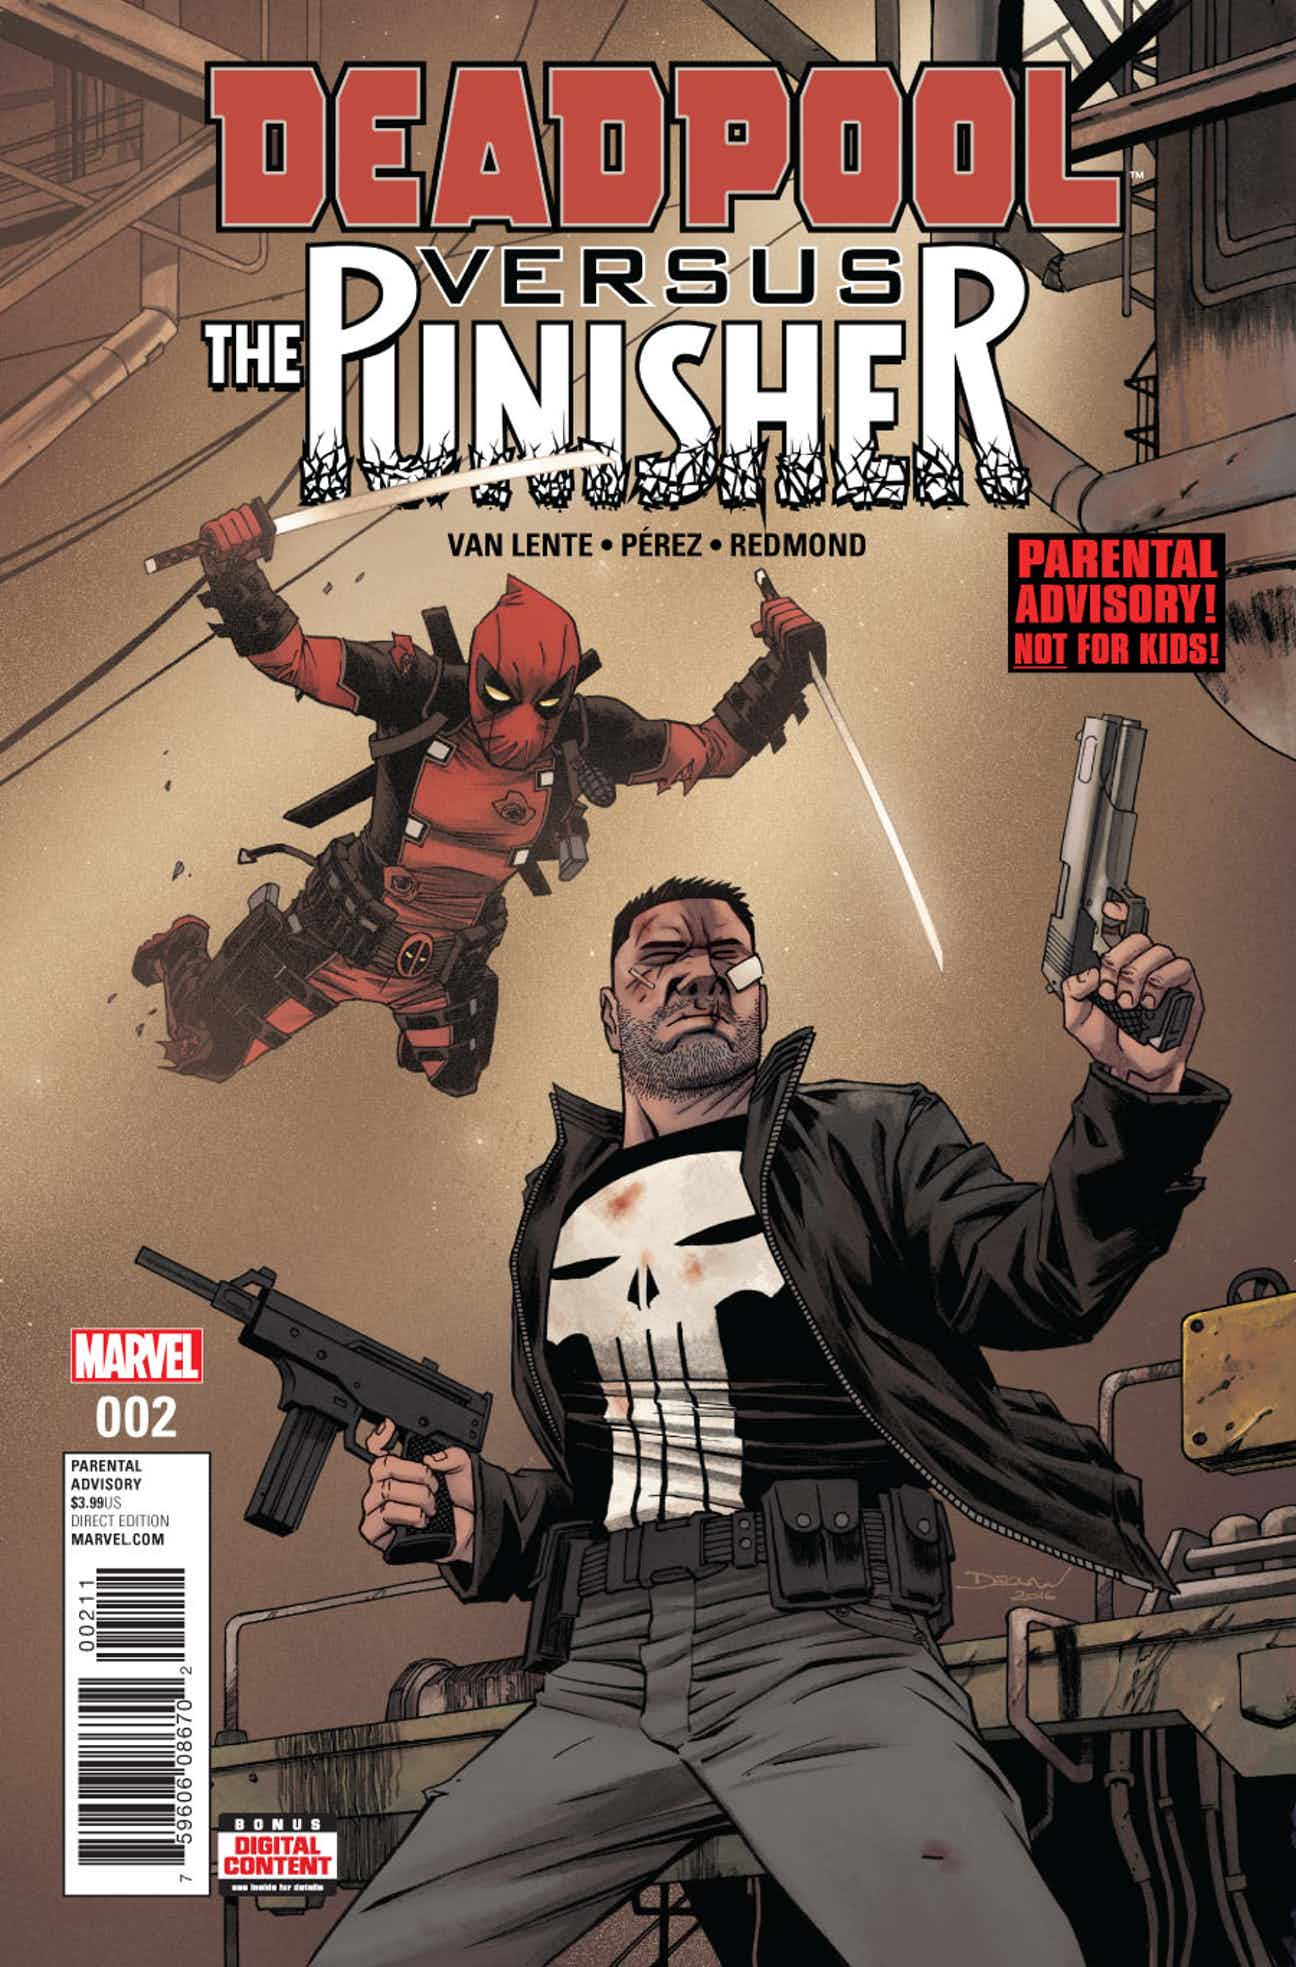 Deadpool vs The Punisher #2 Review